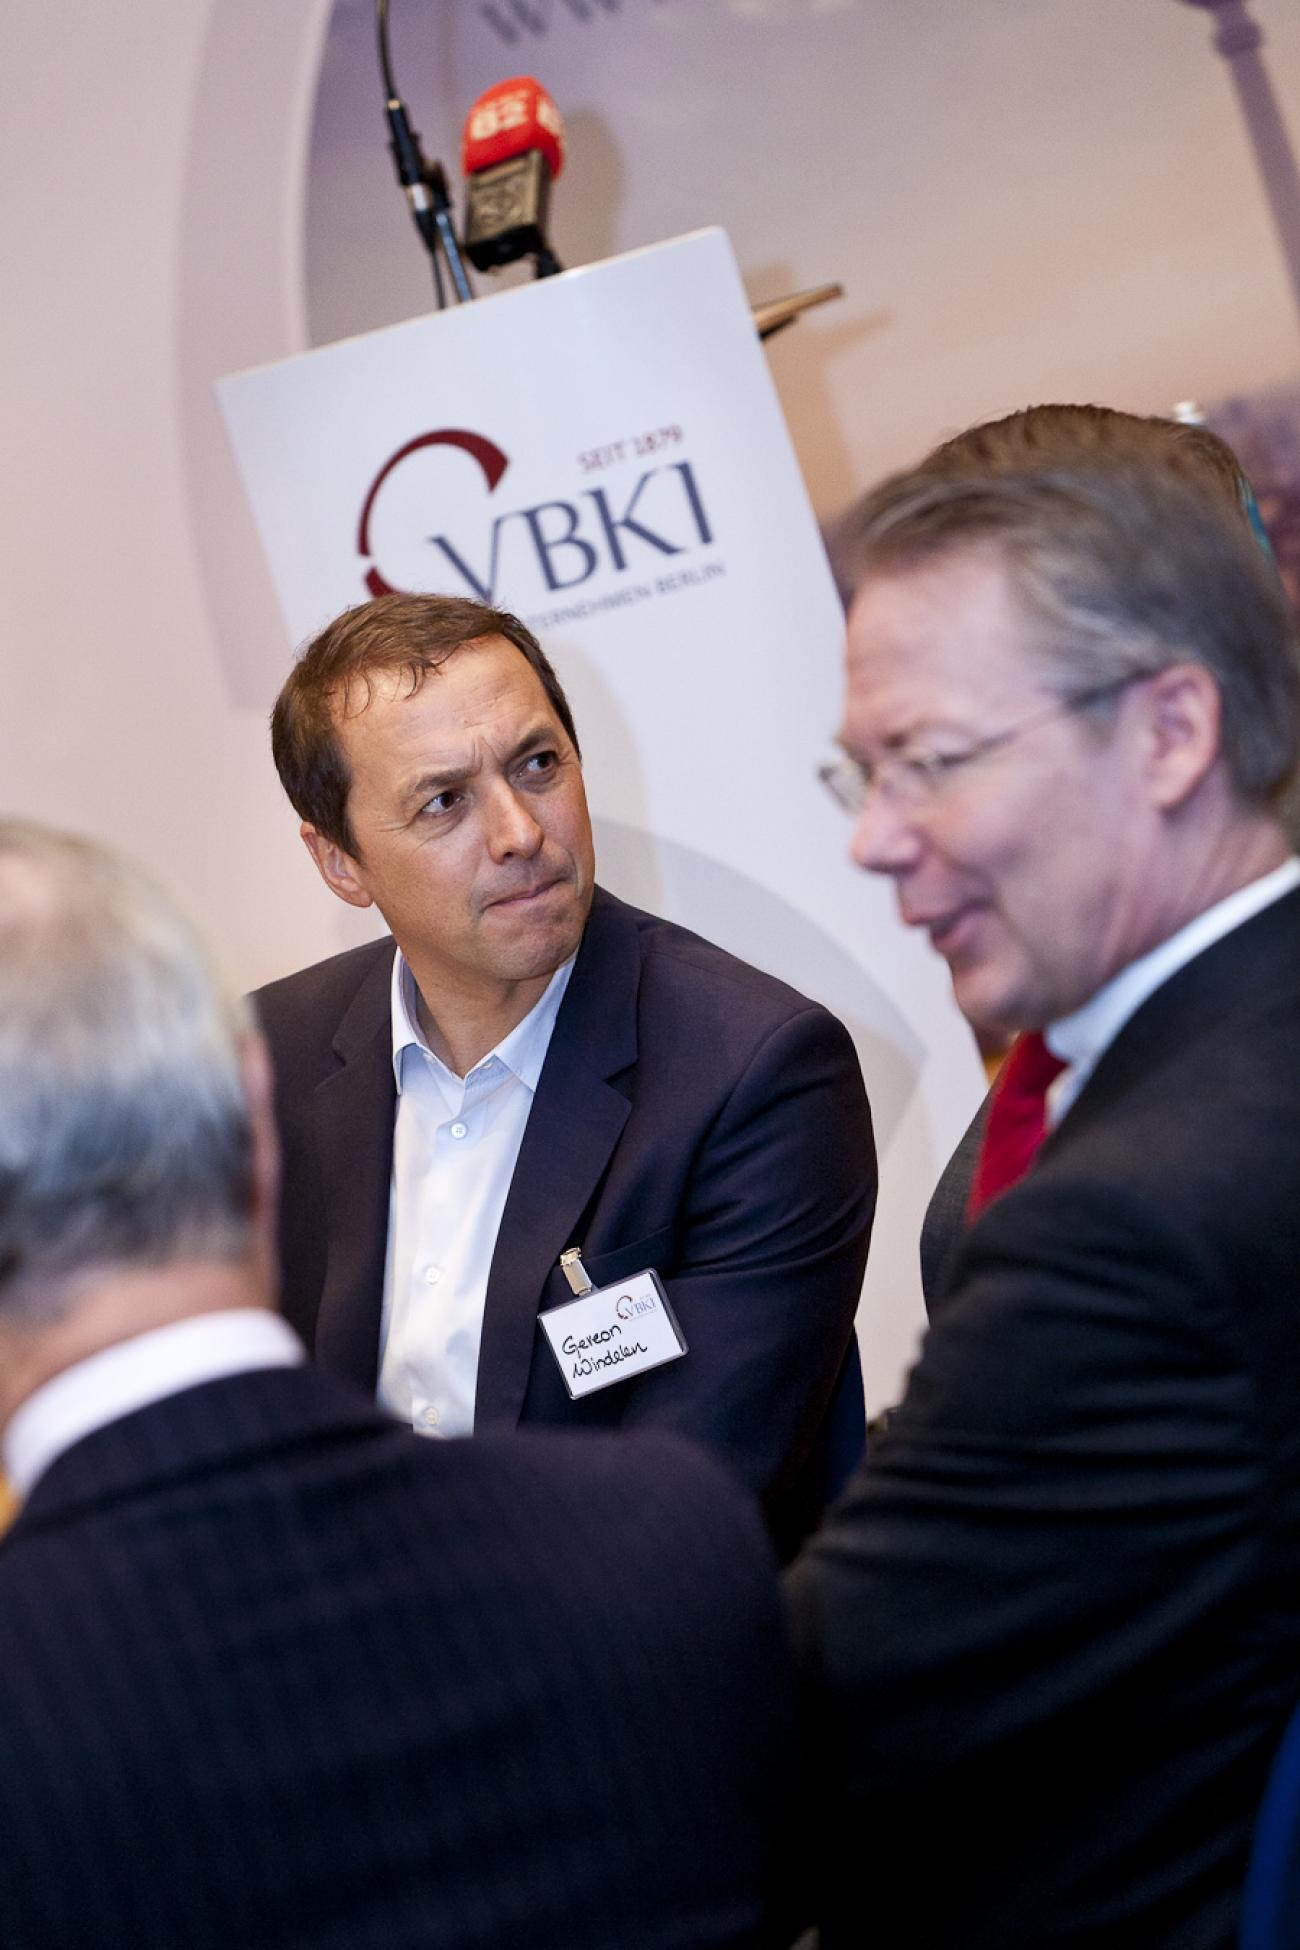 050 Business Breakfast VBKI 27022013 Inga Haar?itok=WxDRoZ0v